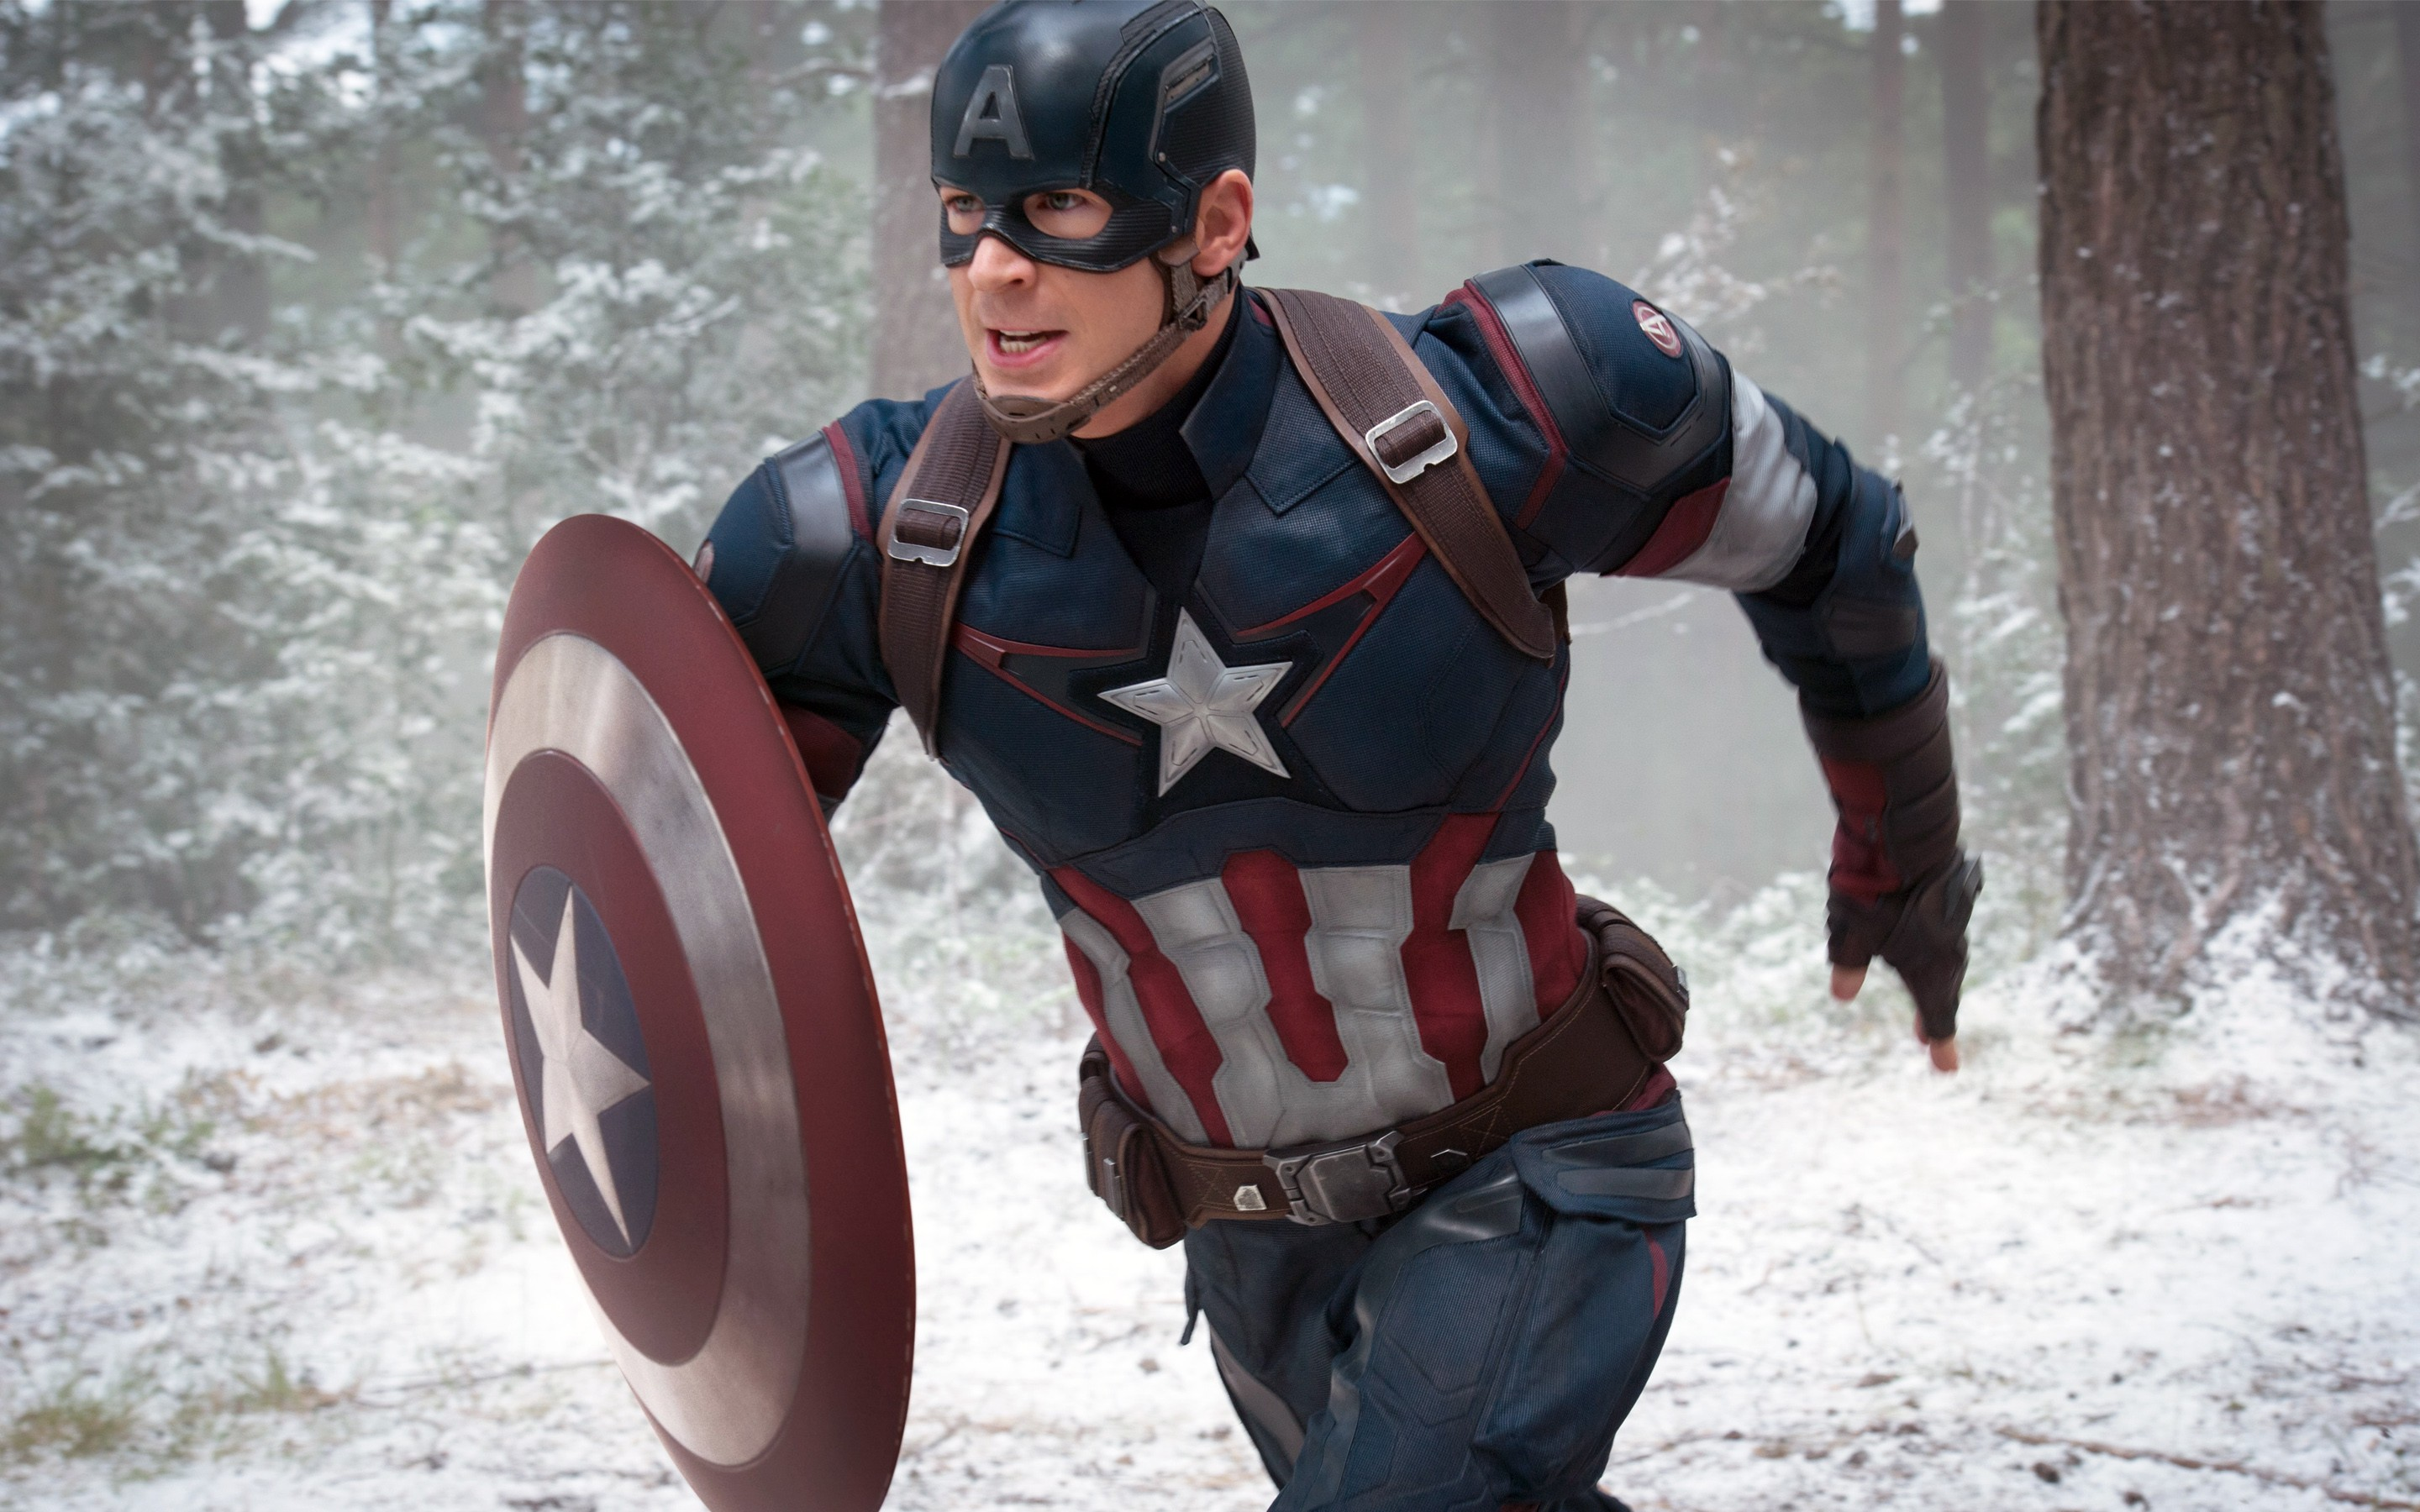 Captain america avengers 2 hd movies 4k wallpapers for American cuisine movie download